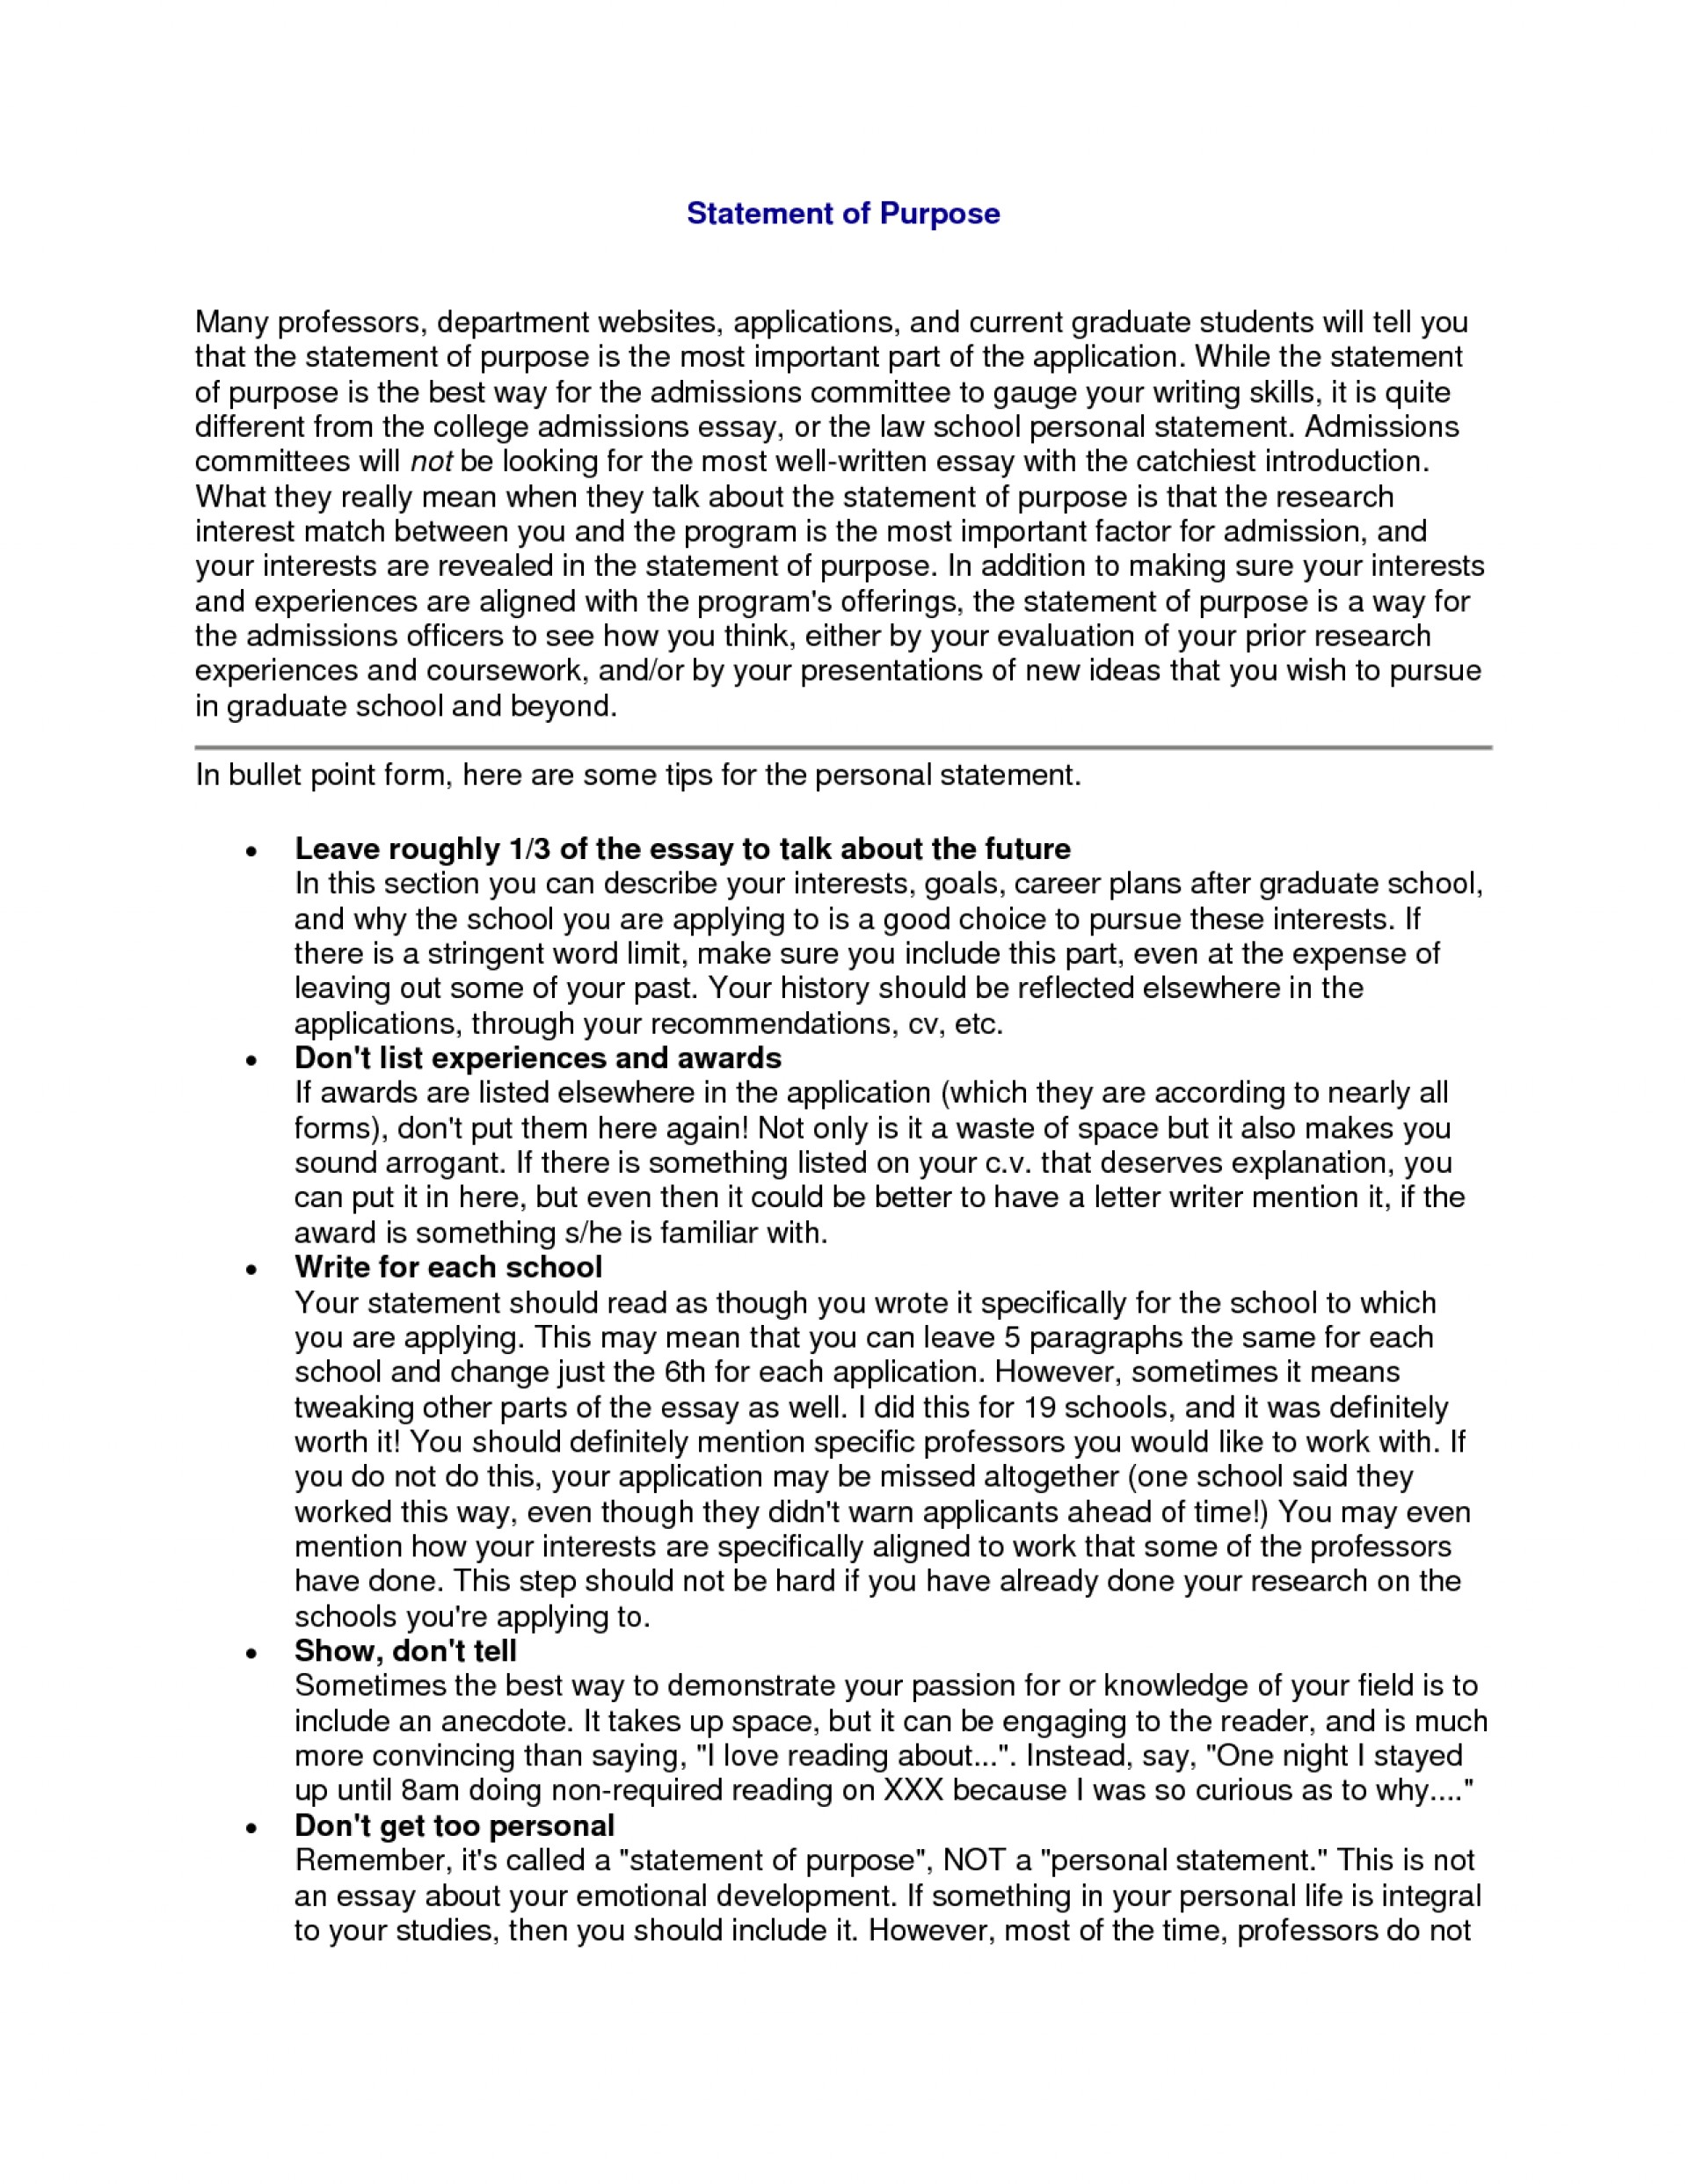 007 Essay Example Purpose Of An Graduate School Statement Striking Expository Is To Answer The Question 1920